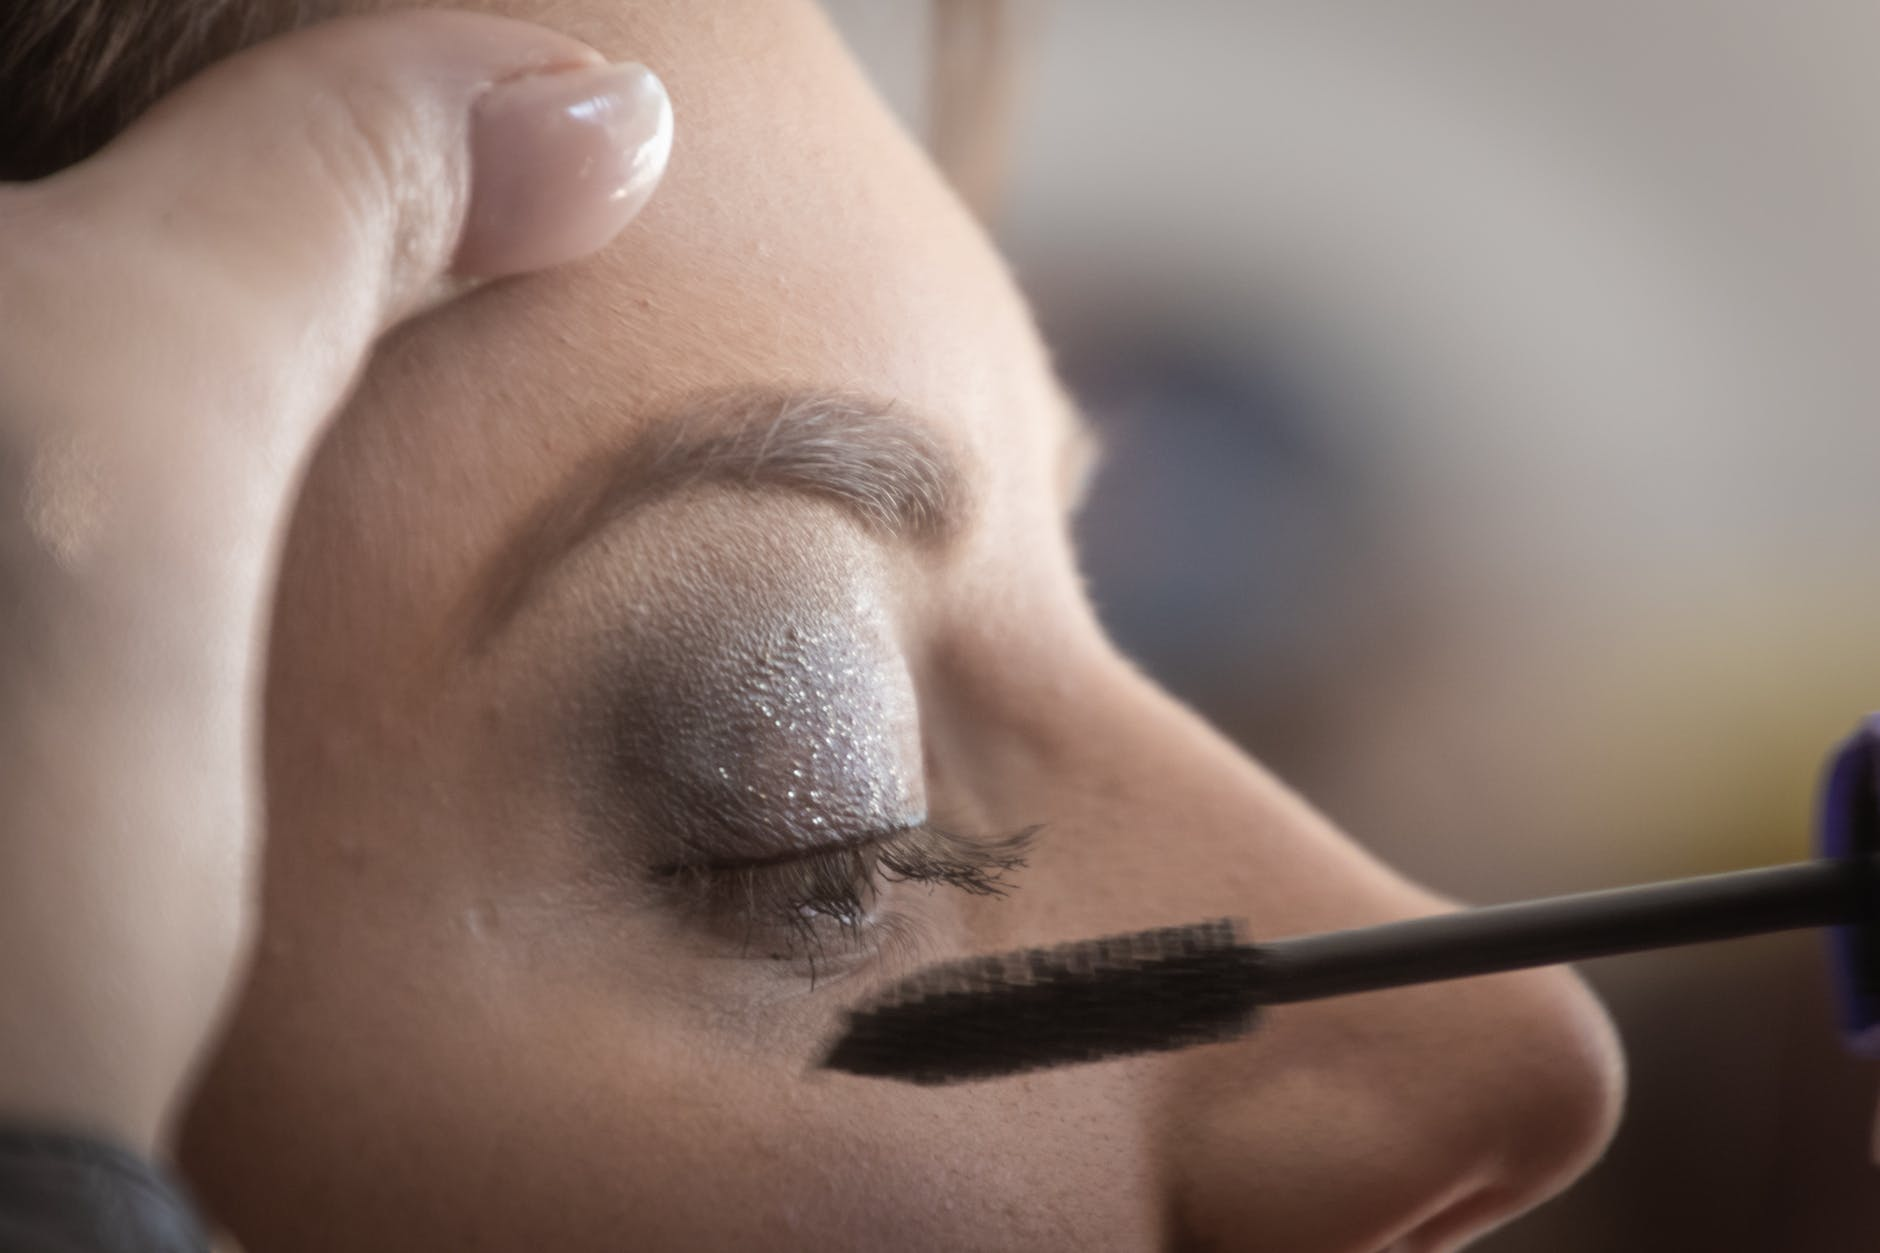 Professional Tips to Make your Eyes Look Bigger